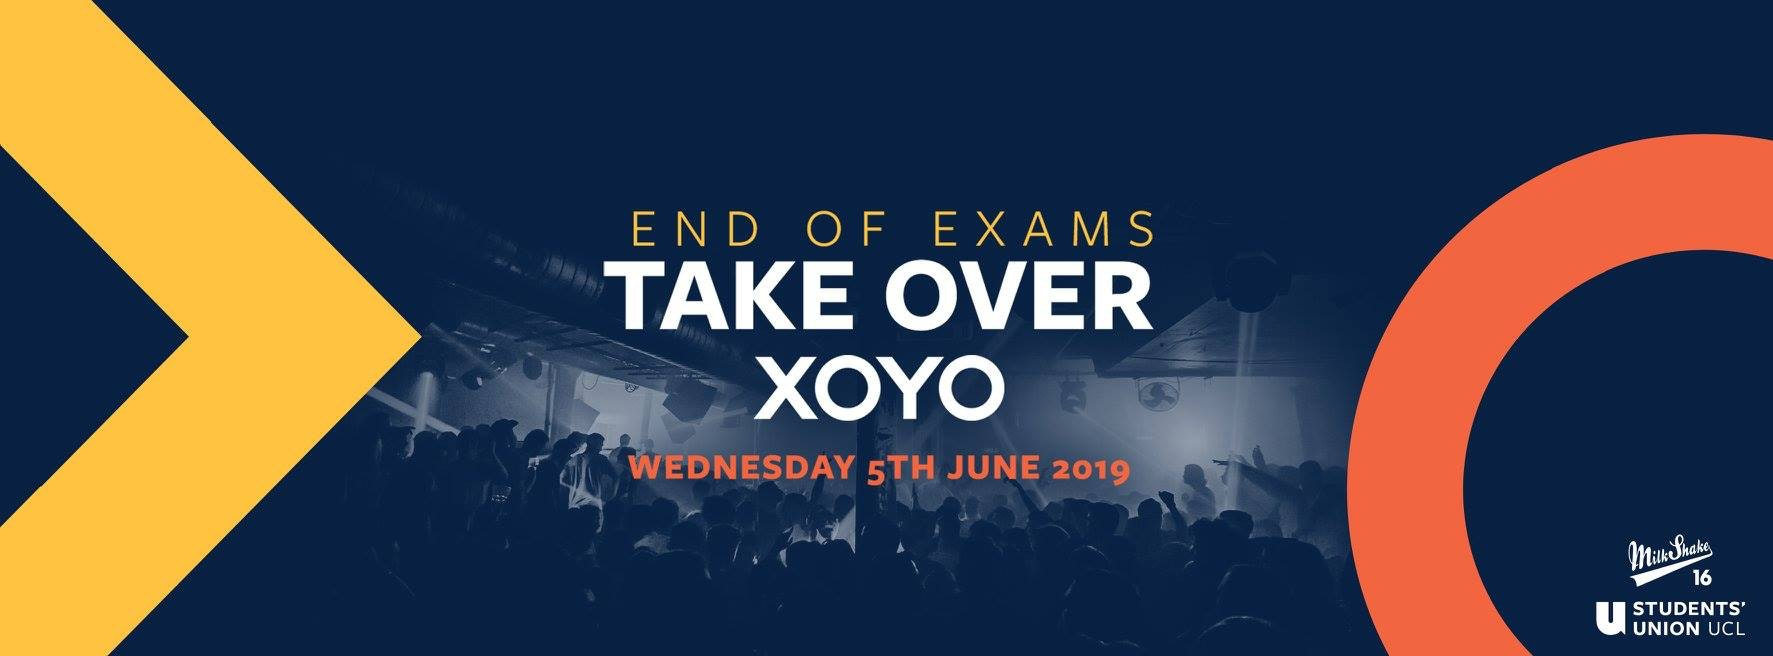 XOYO – End OF Exams Take Over | June 5th 2019